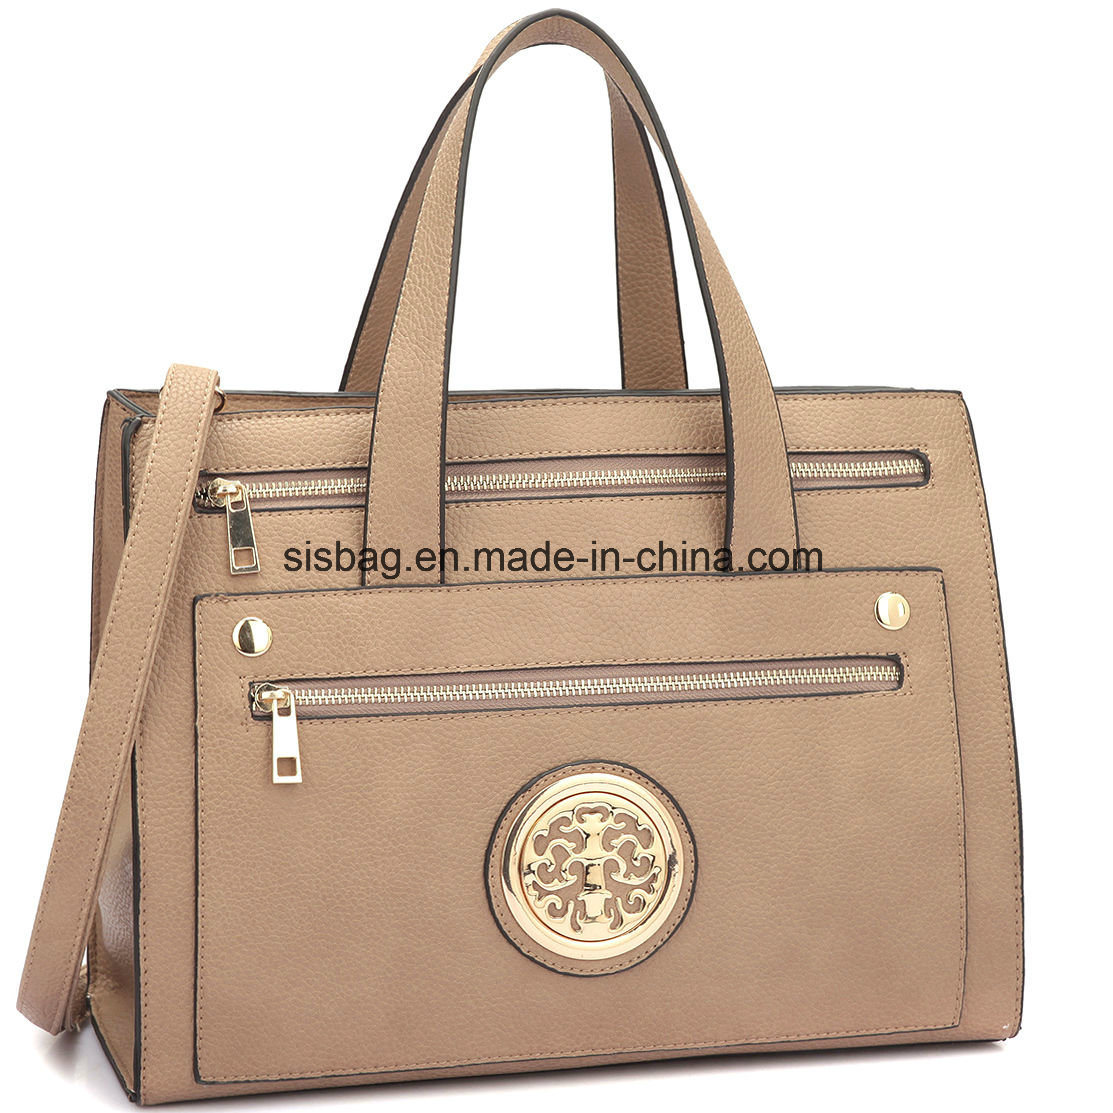 Designer Litchi Grain PU Leather Women Handbag Messeger Bag